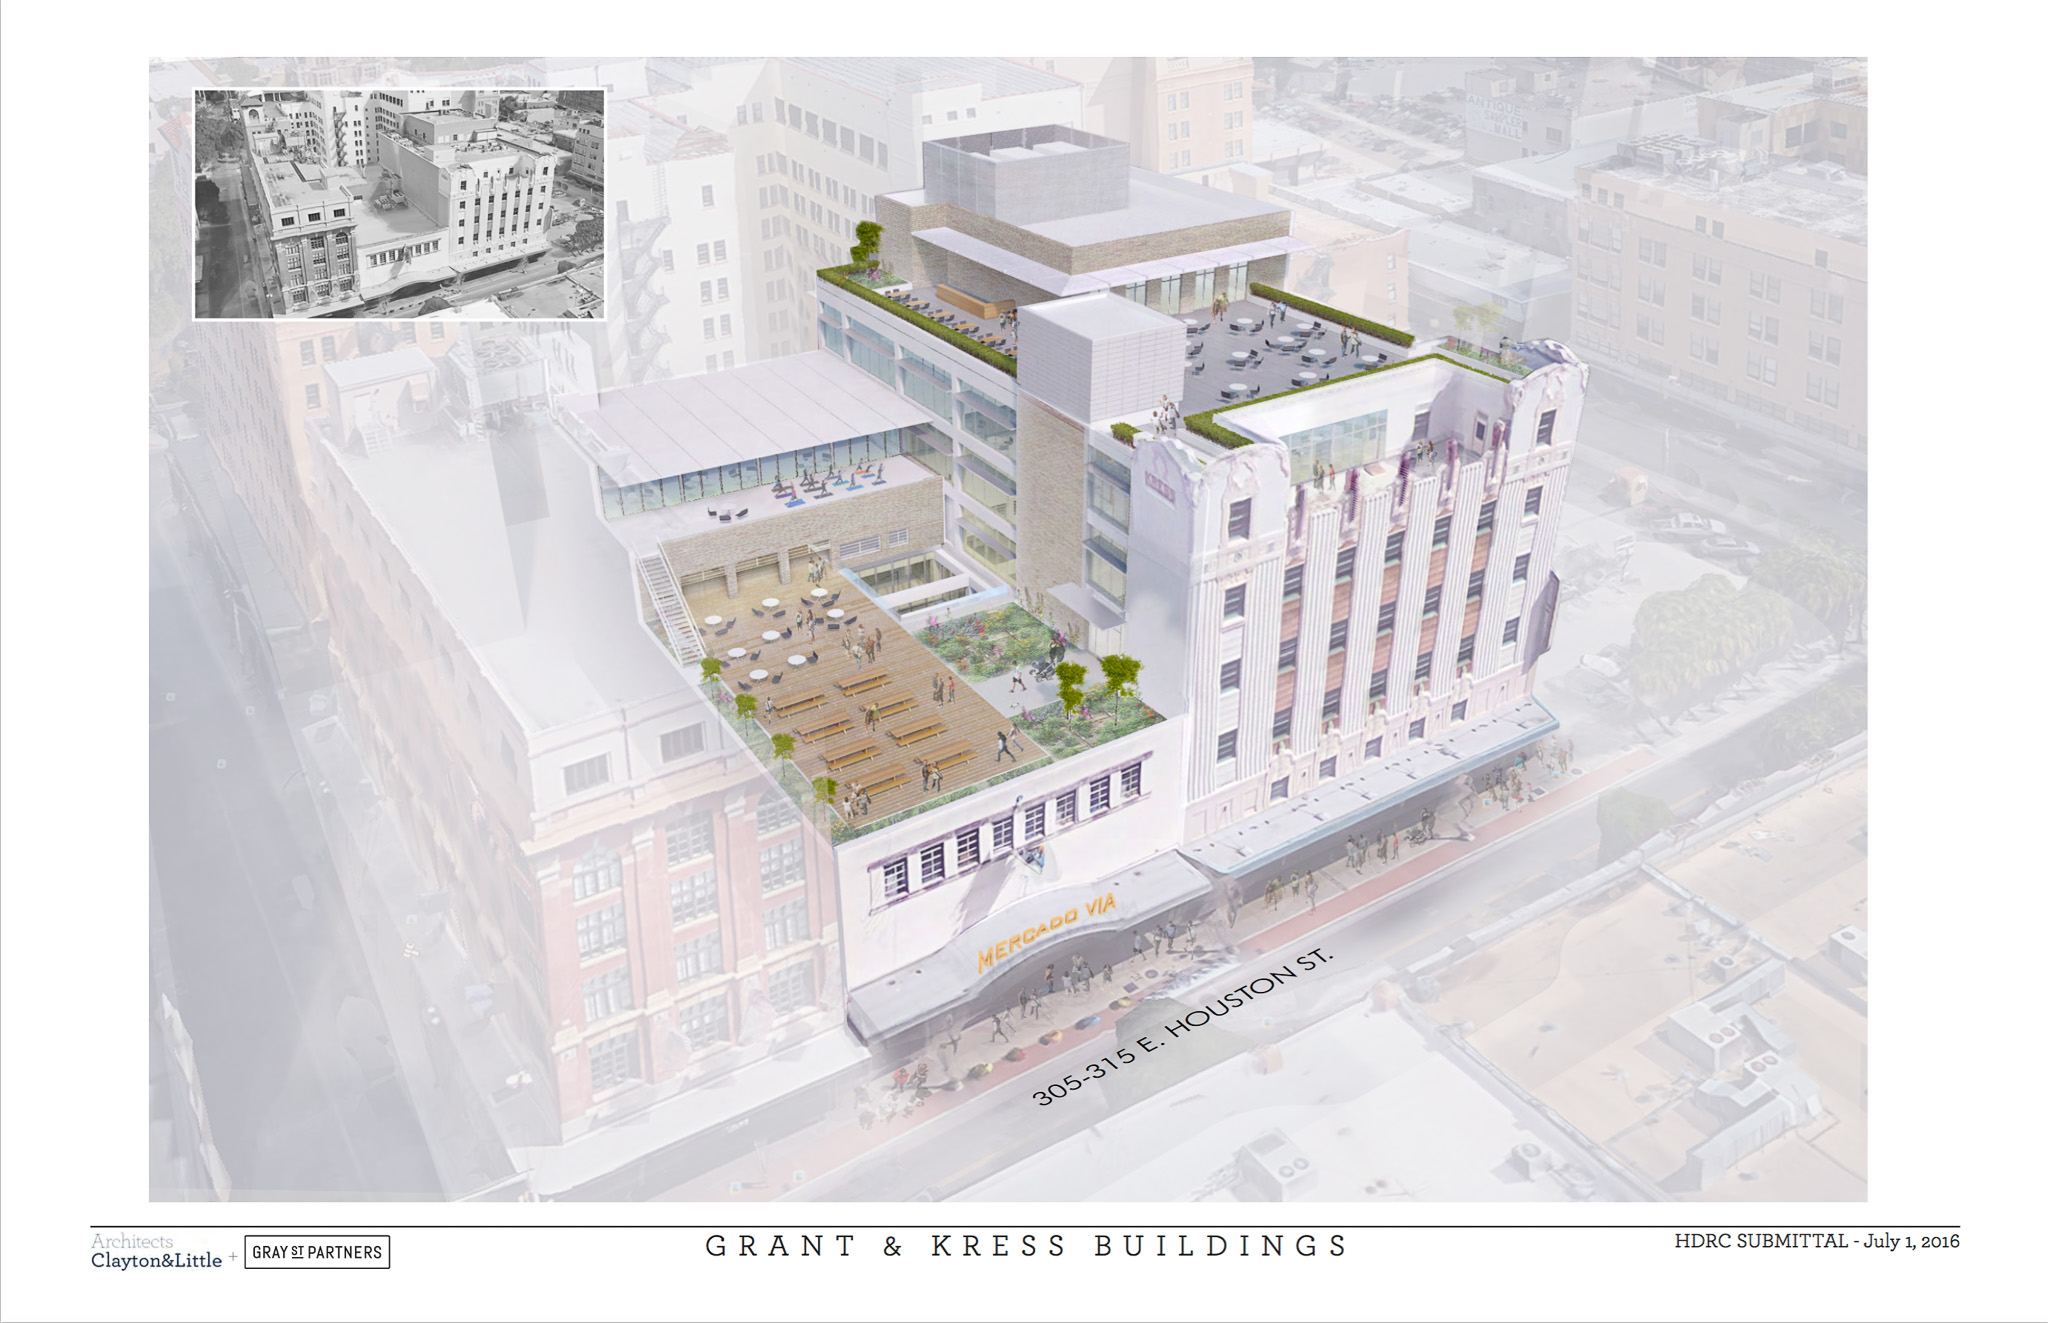 Grant & Kress Buildings. Rendering by Clayton&Little Architects courtesy of Gray St Partners.